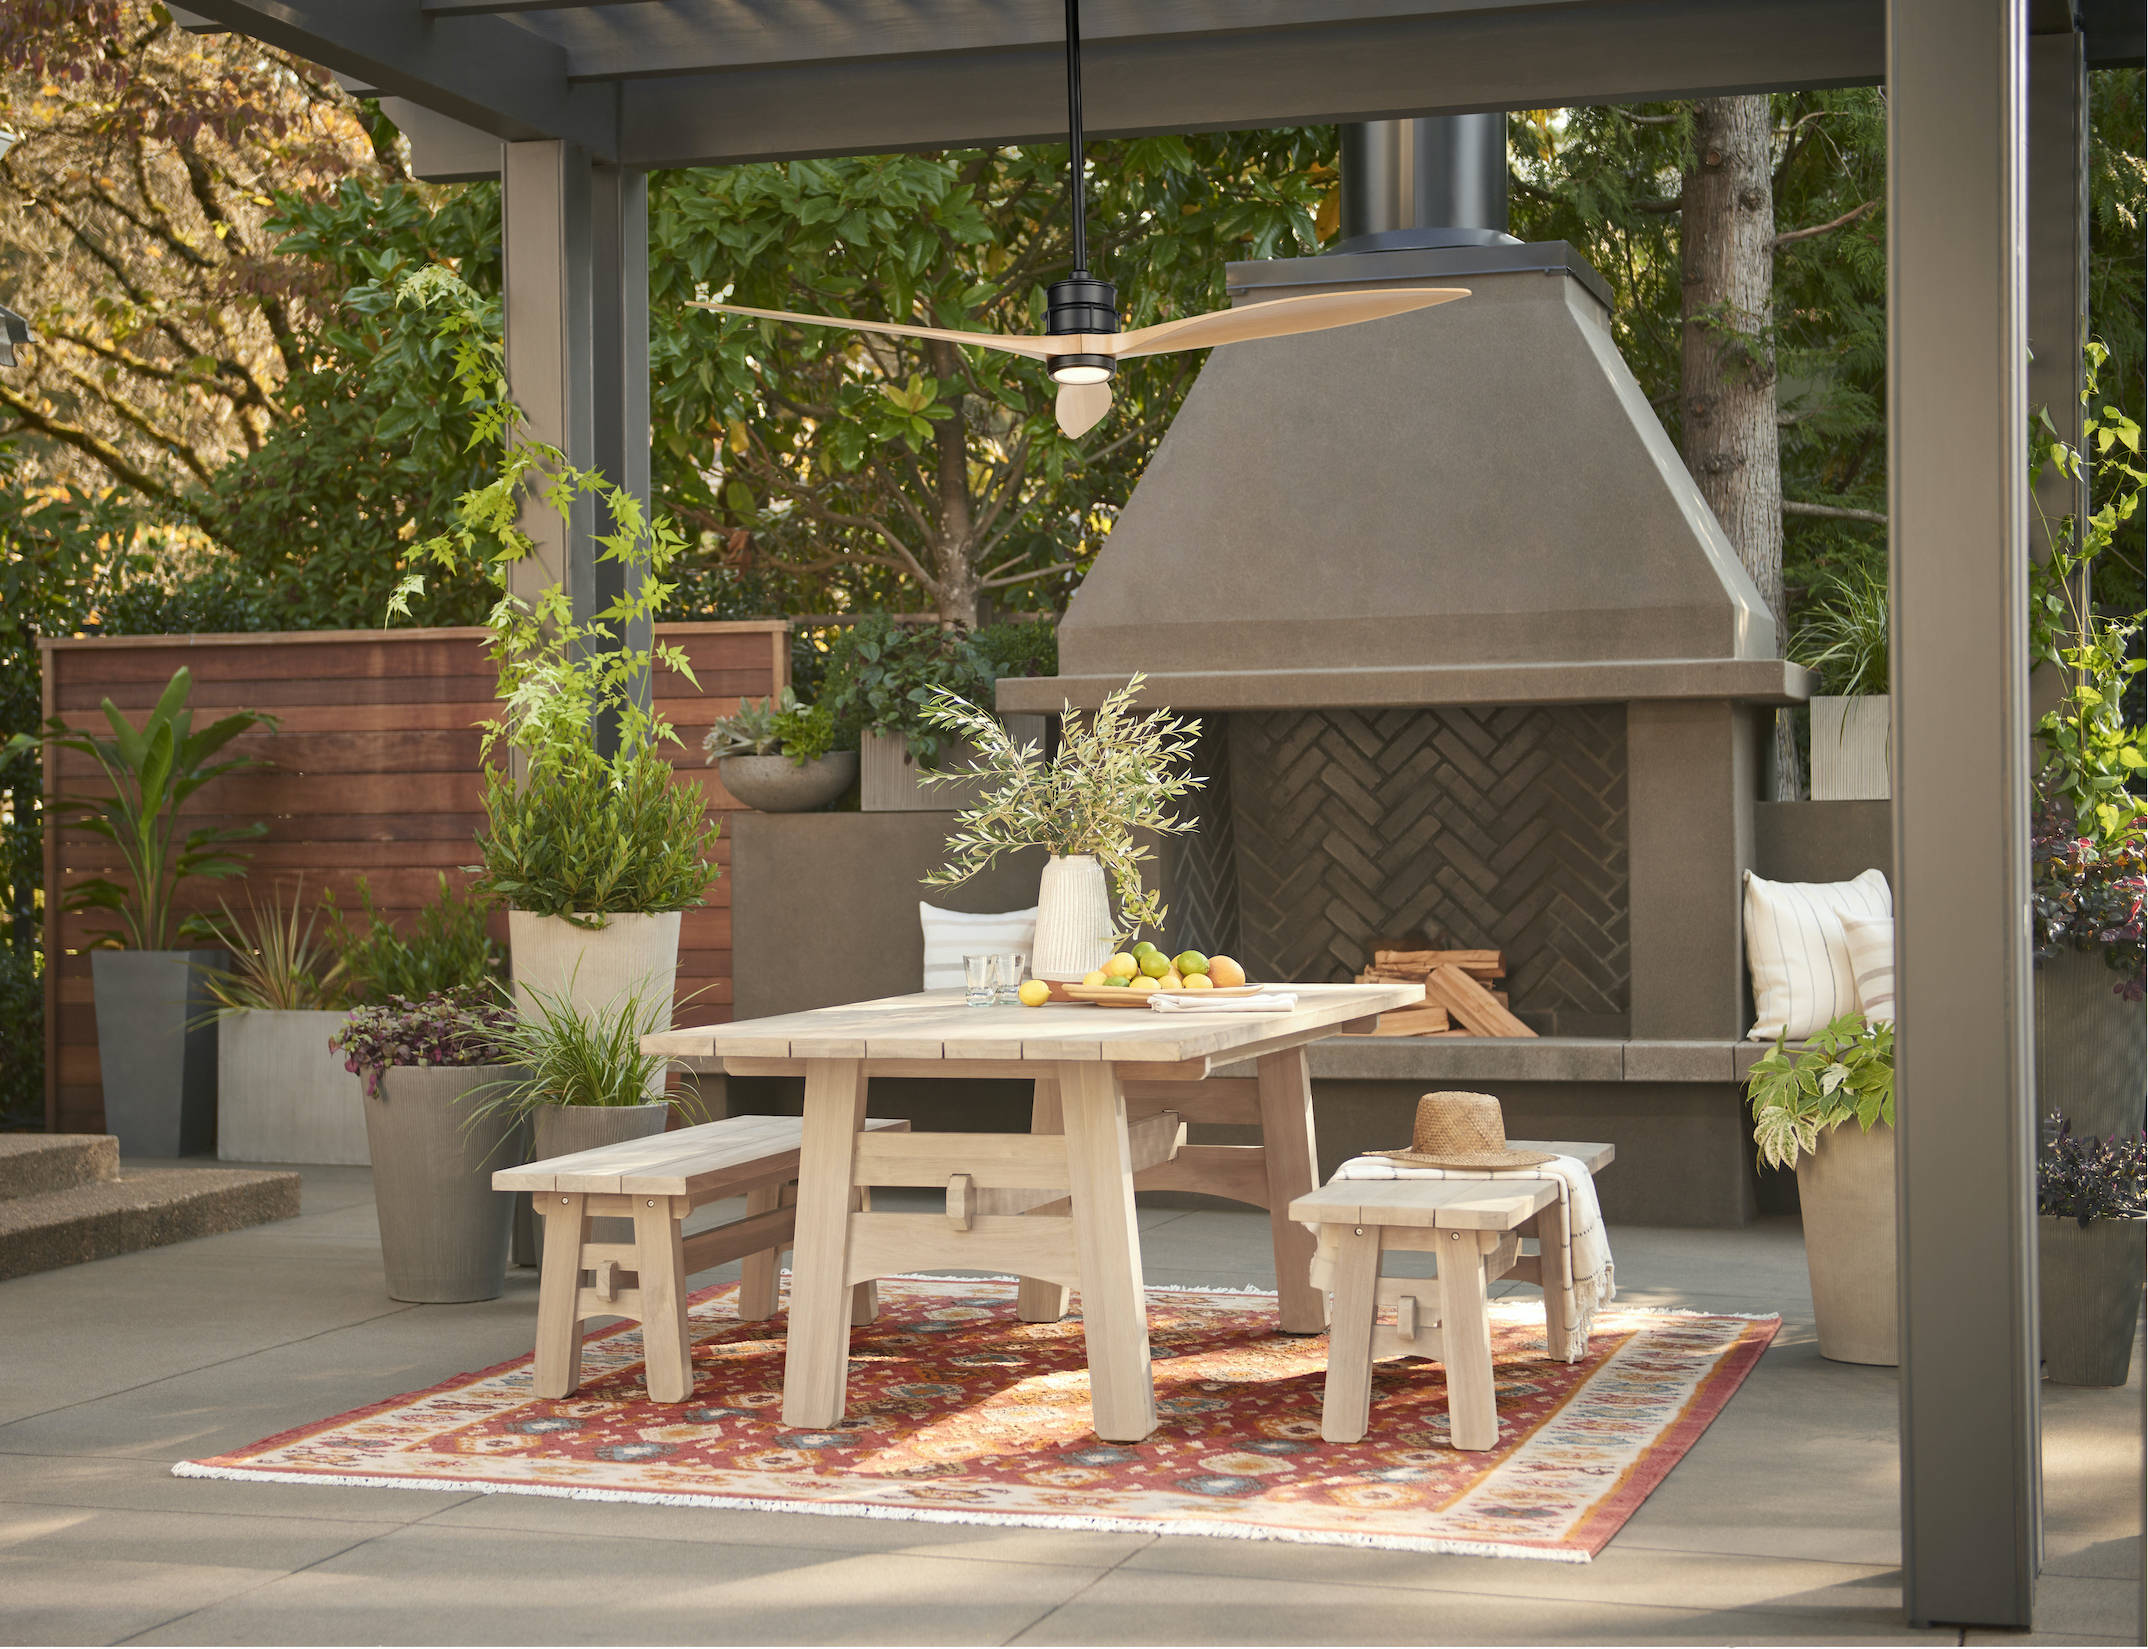 Outdoor oases need good light and some air circulation too—especially in the hot midday sun or to keep bugs away once dusk falls. The fan is the sleek, energy-efficient Falcon LED Ceiling Fan in Matte Black and Natural ($979). (Also available: the Ronde Teak Dining Table and Ronde Teak Bench.)